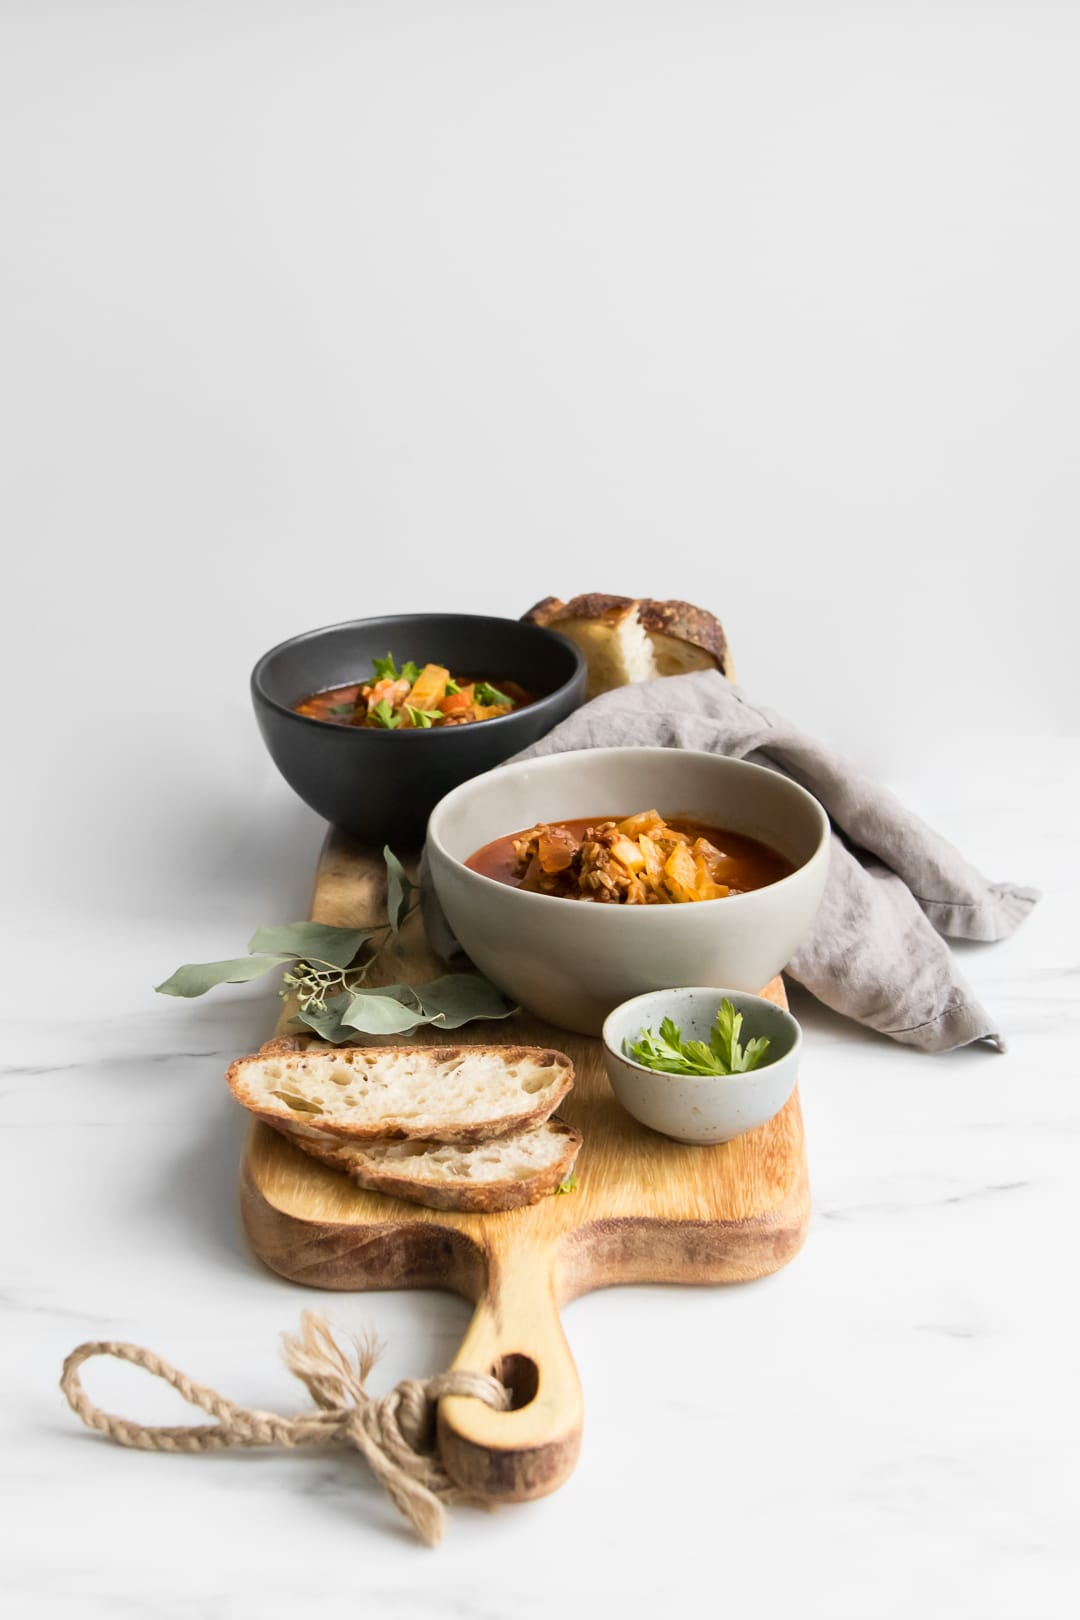 Side view of wooden board with two bowls of Cabbage Roll Stew and two slices of bread